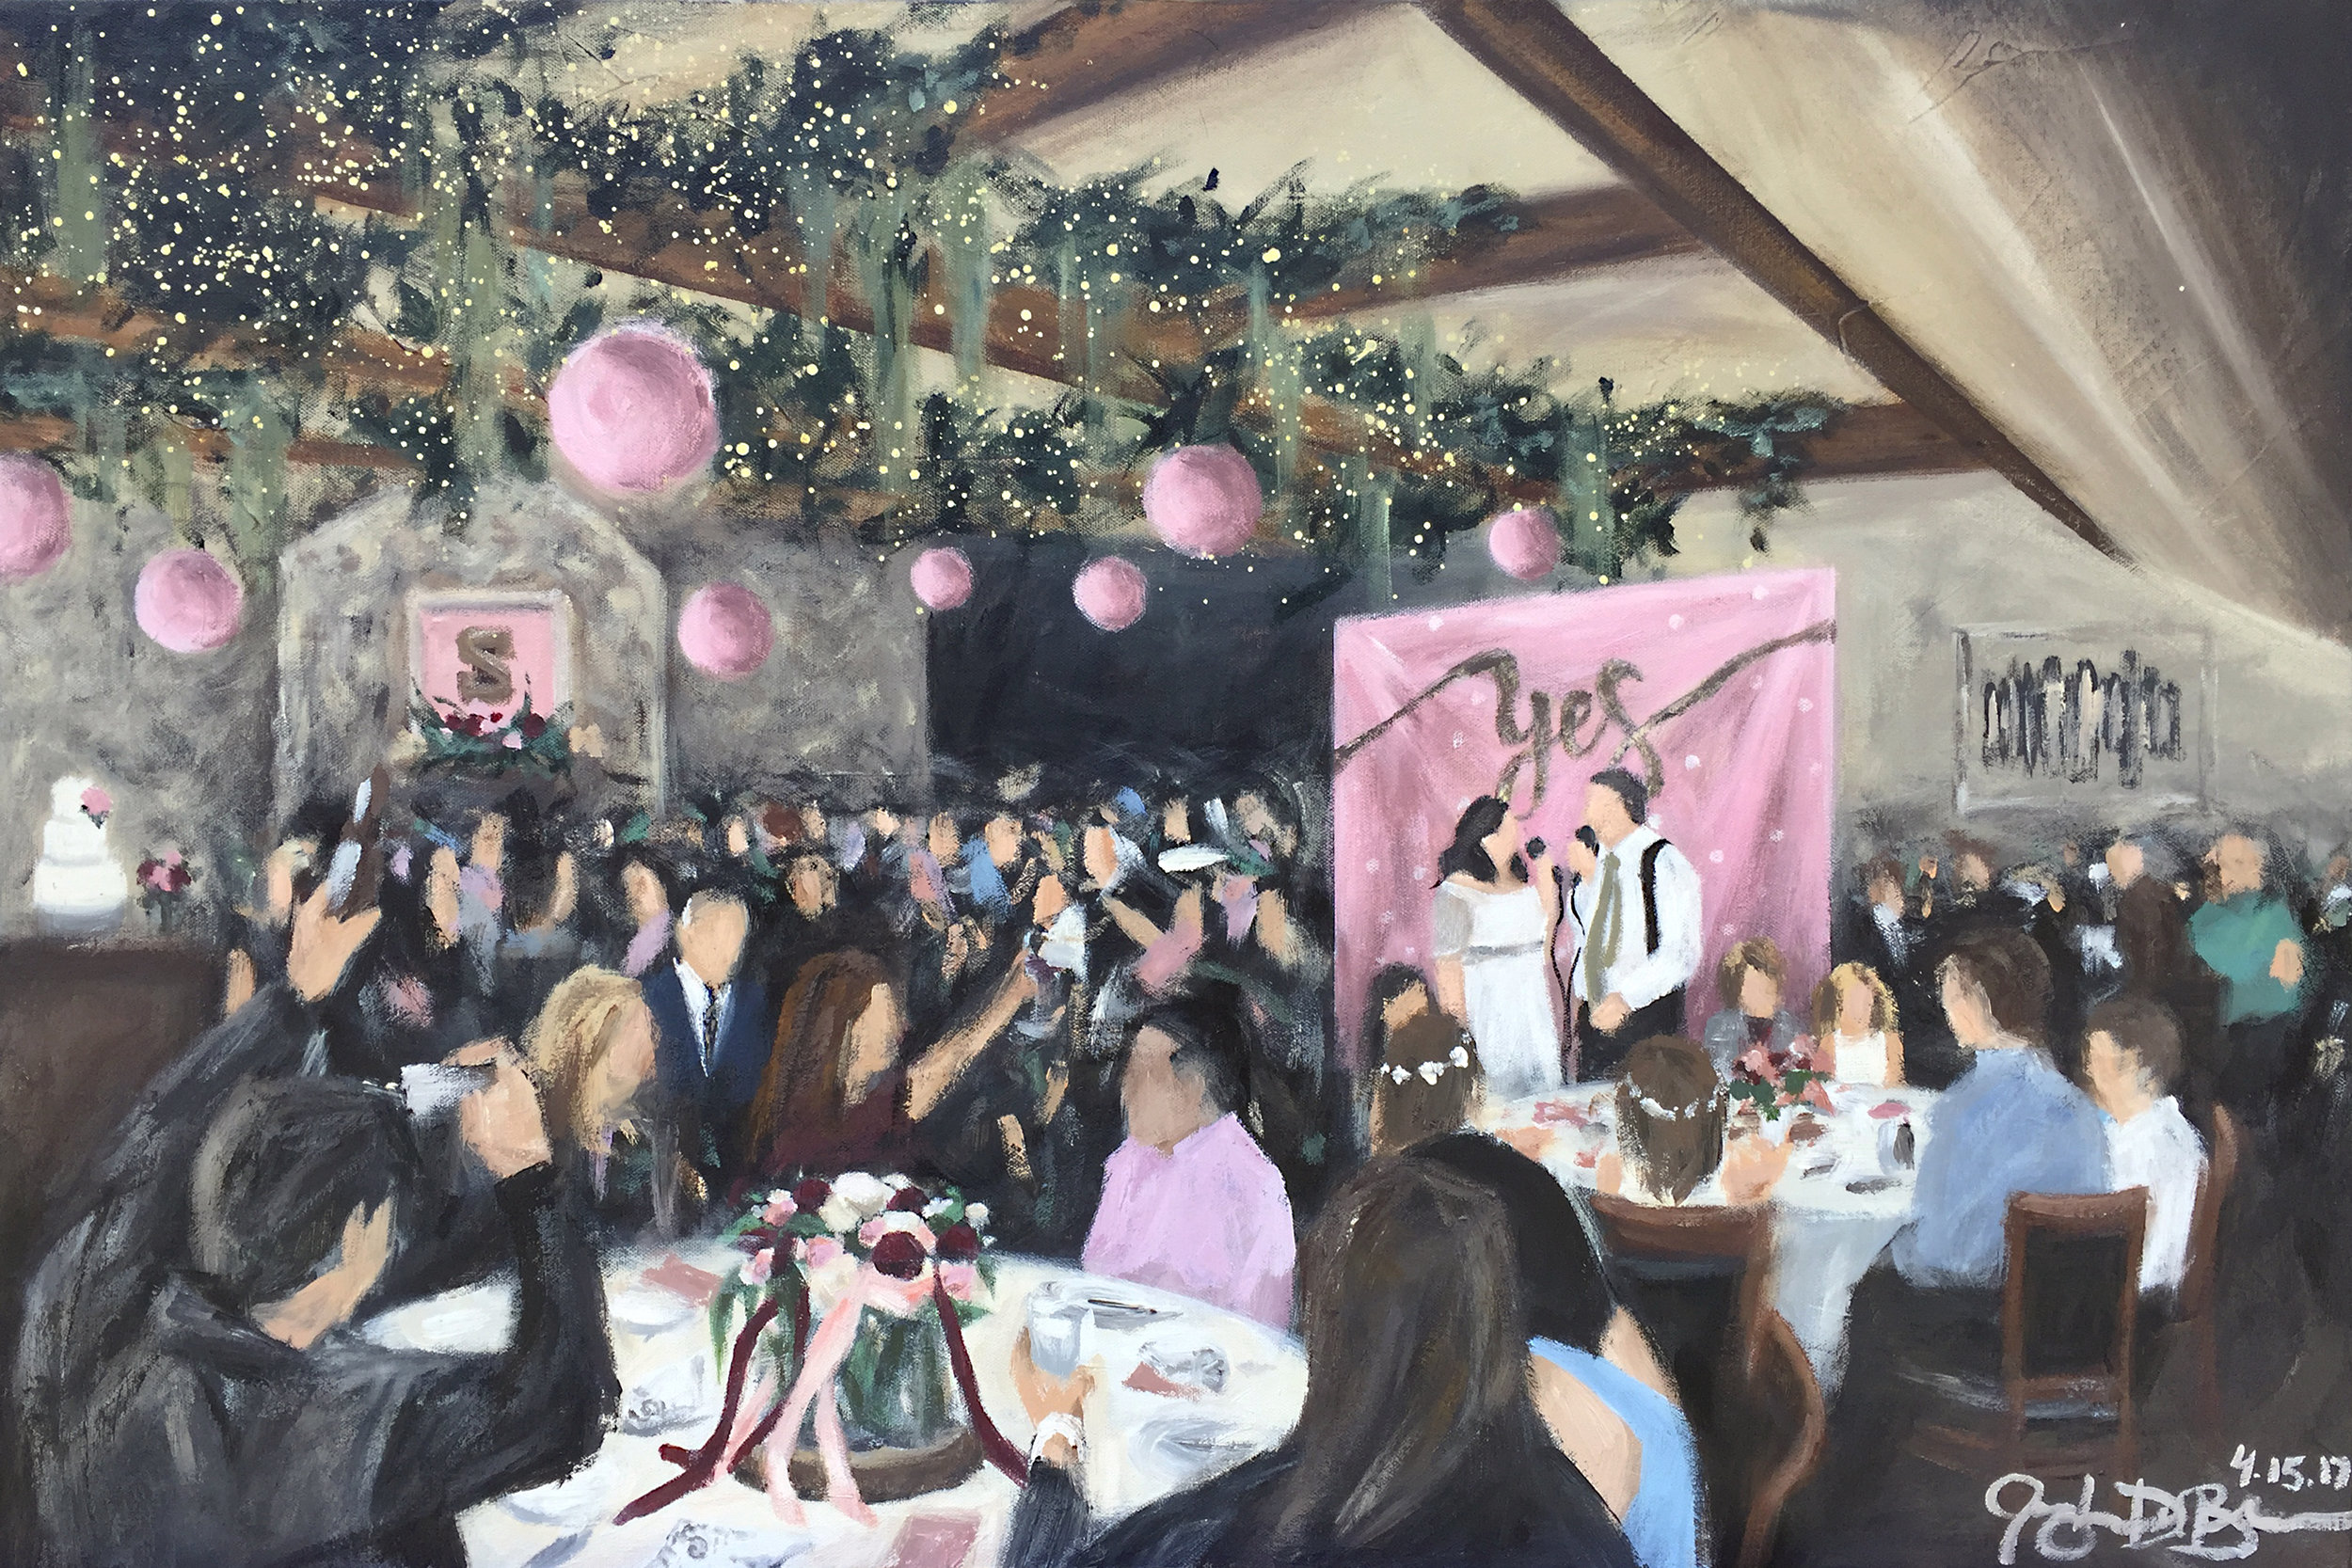 Live Wedding Painting // by Cleveland Event Painter Jacqueline DelBrocco // The Clifton Barn in Olde Avon Village, Avon, OH //24x36in acrylic on canvas